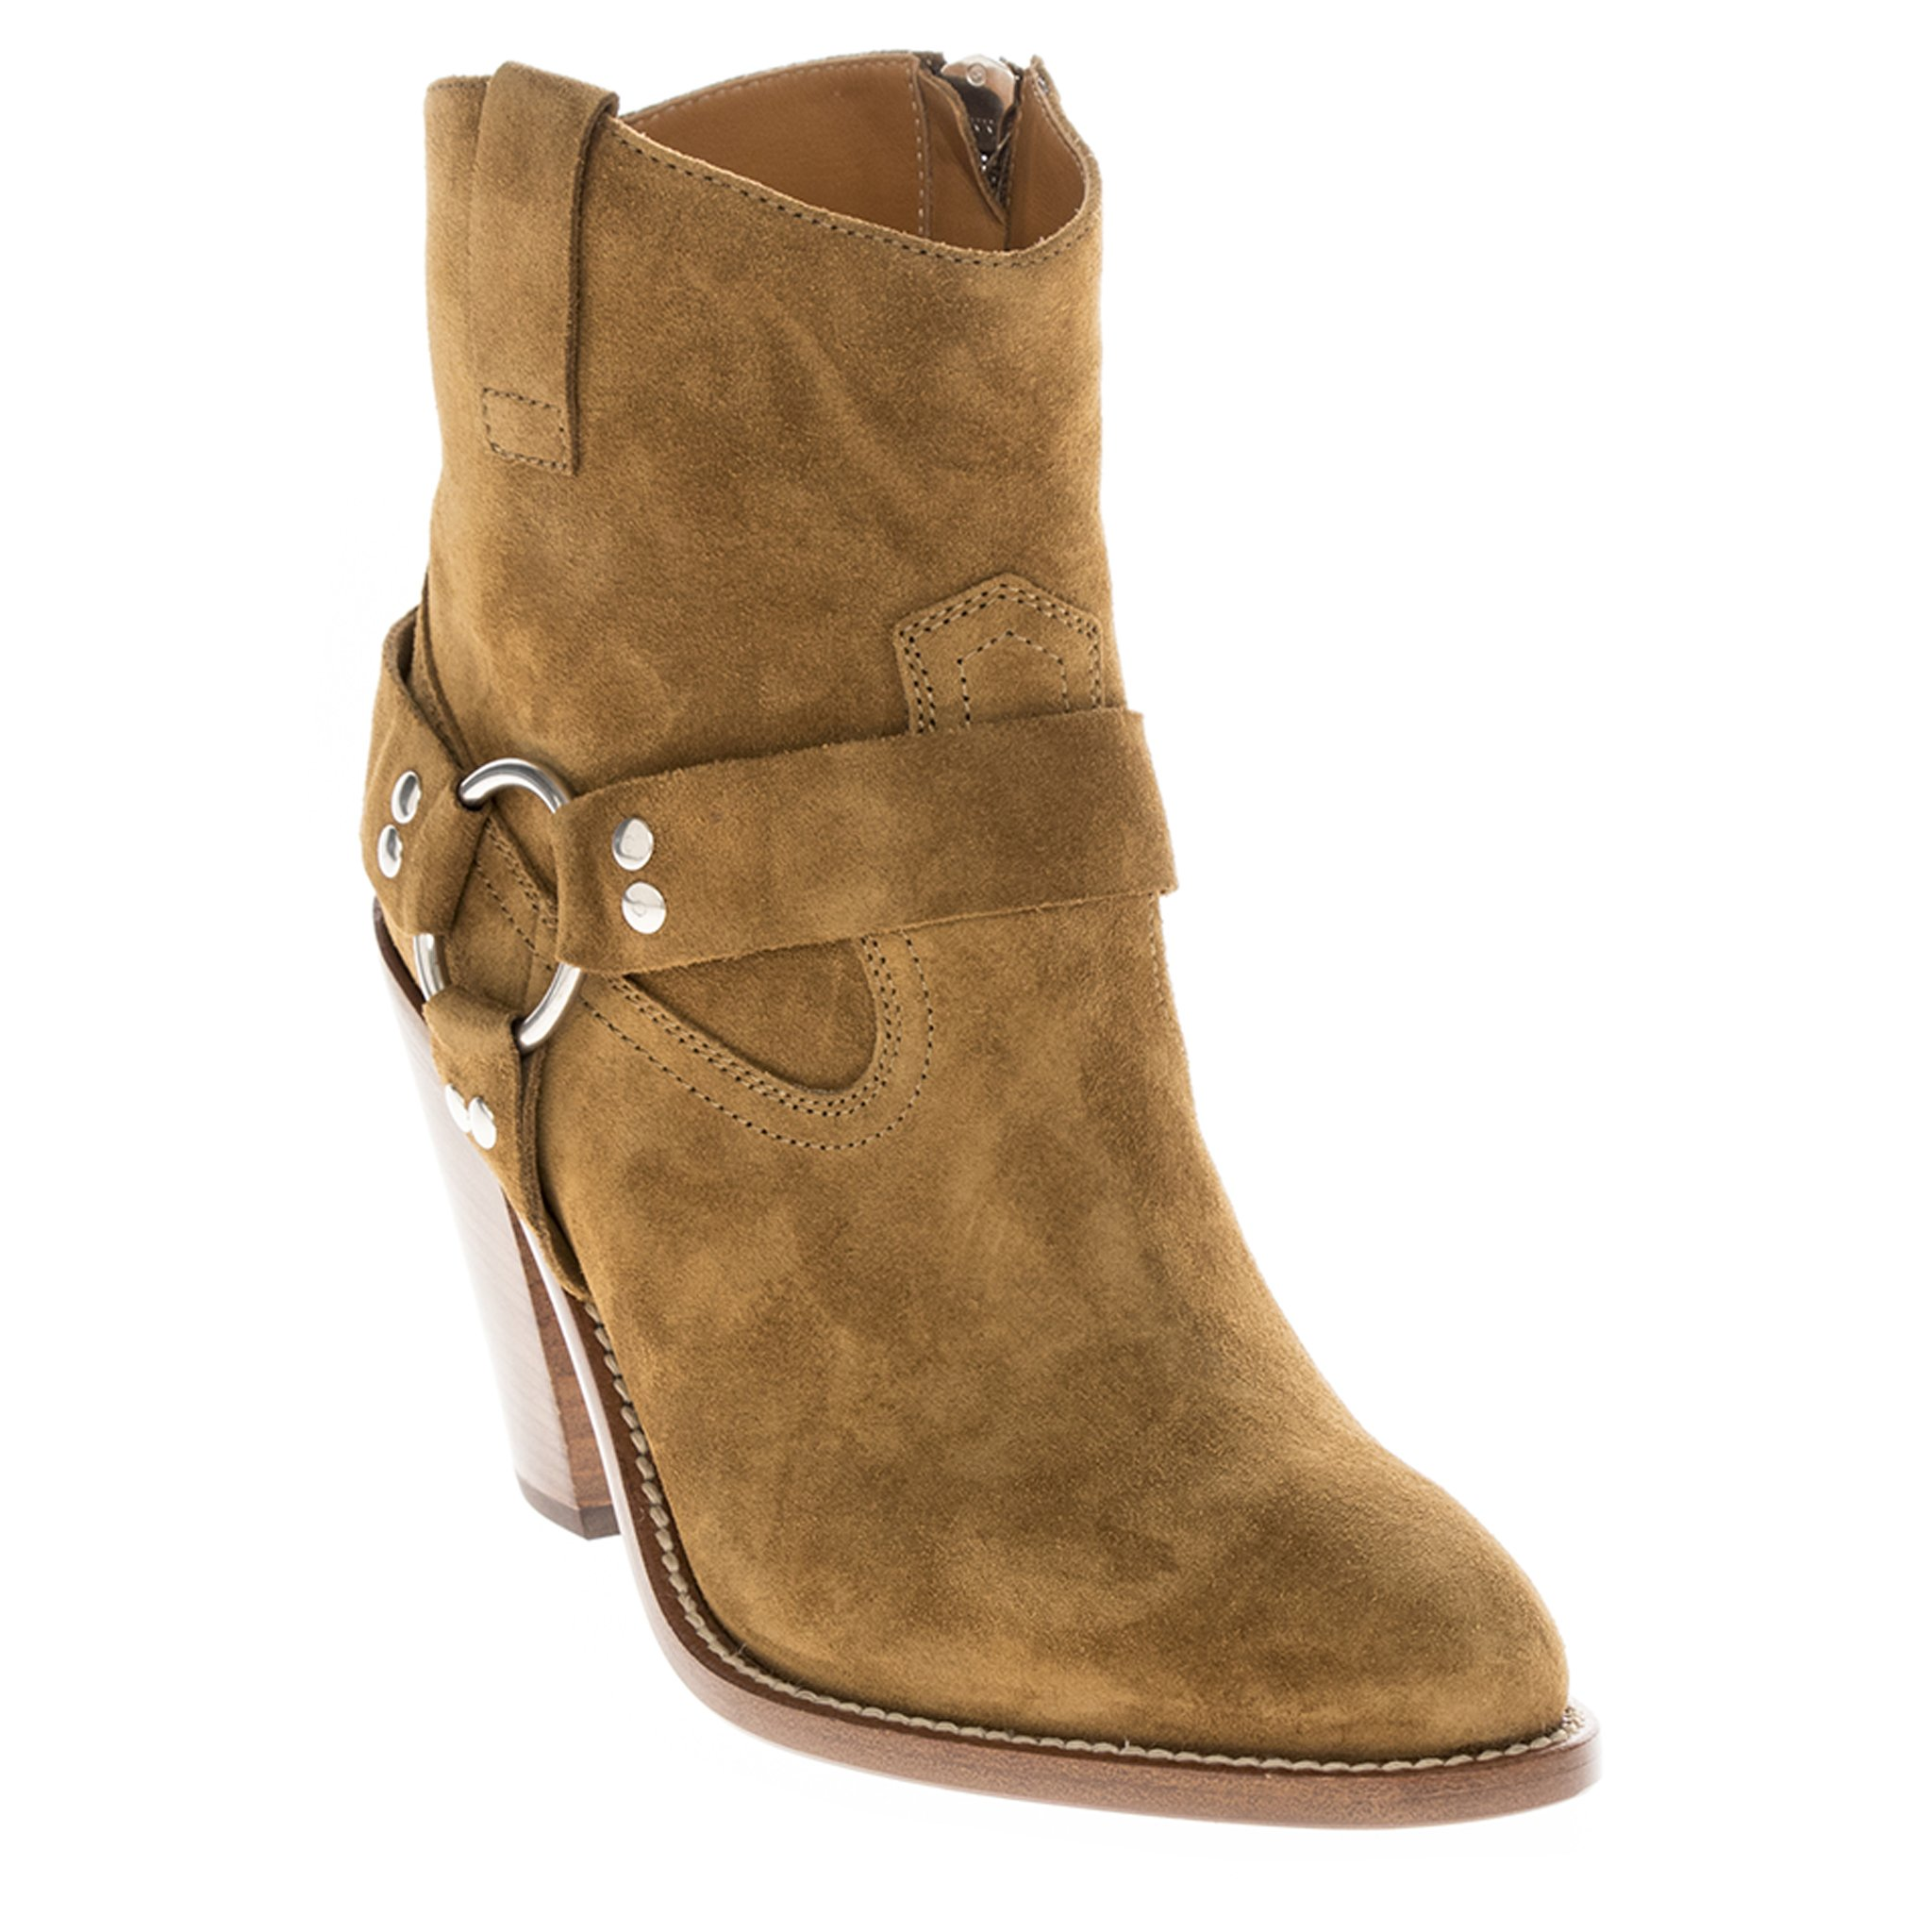 Saint Laurent Women's 'Curtis 80' Harness Western-Style Ankle Boot Suede Tan EU 38 (US 8)